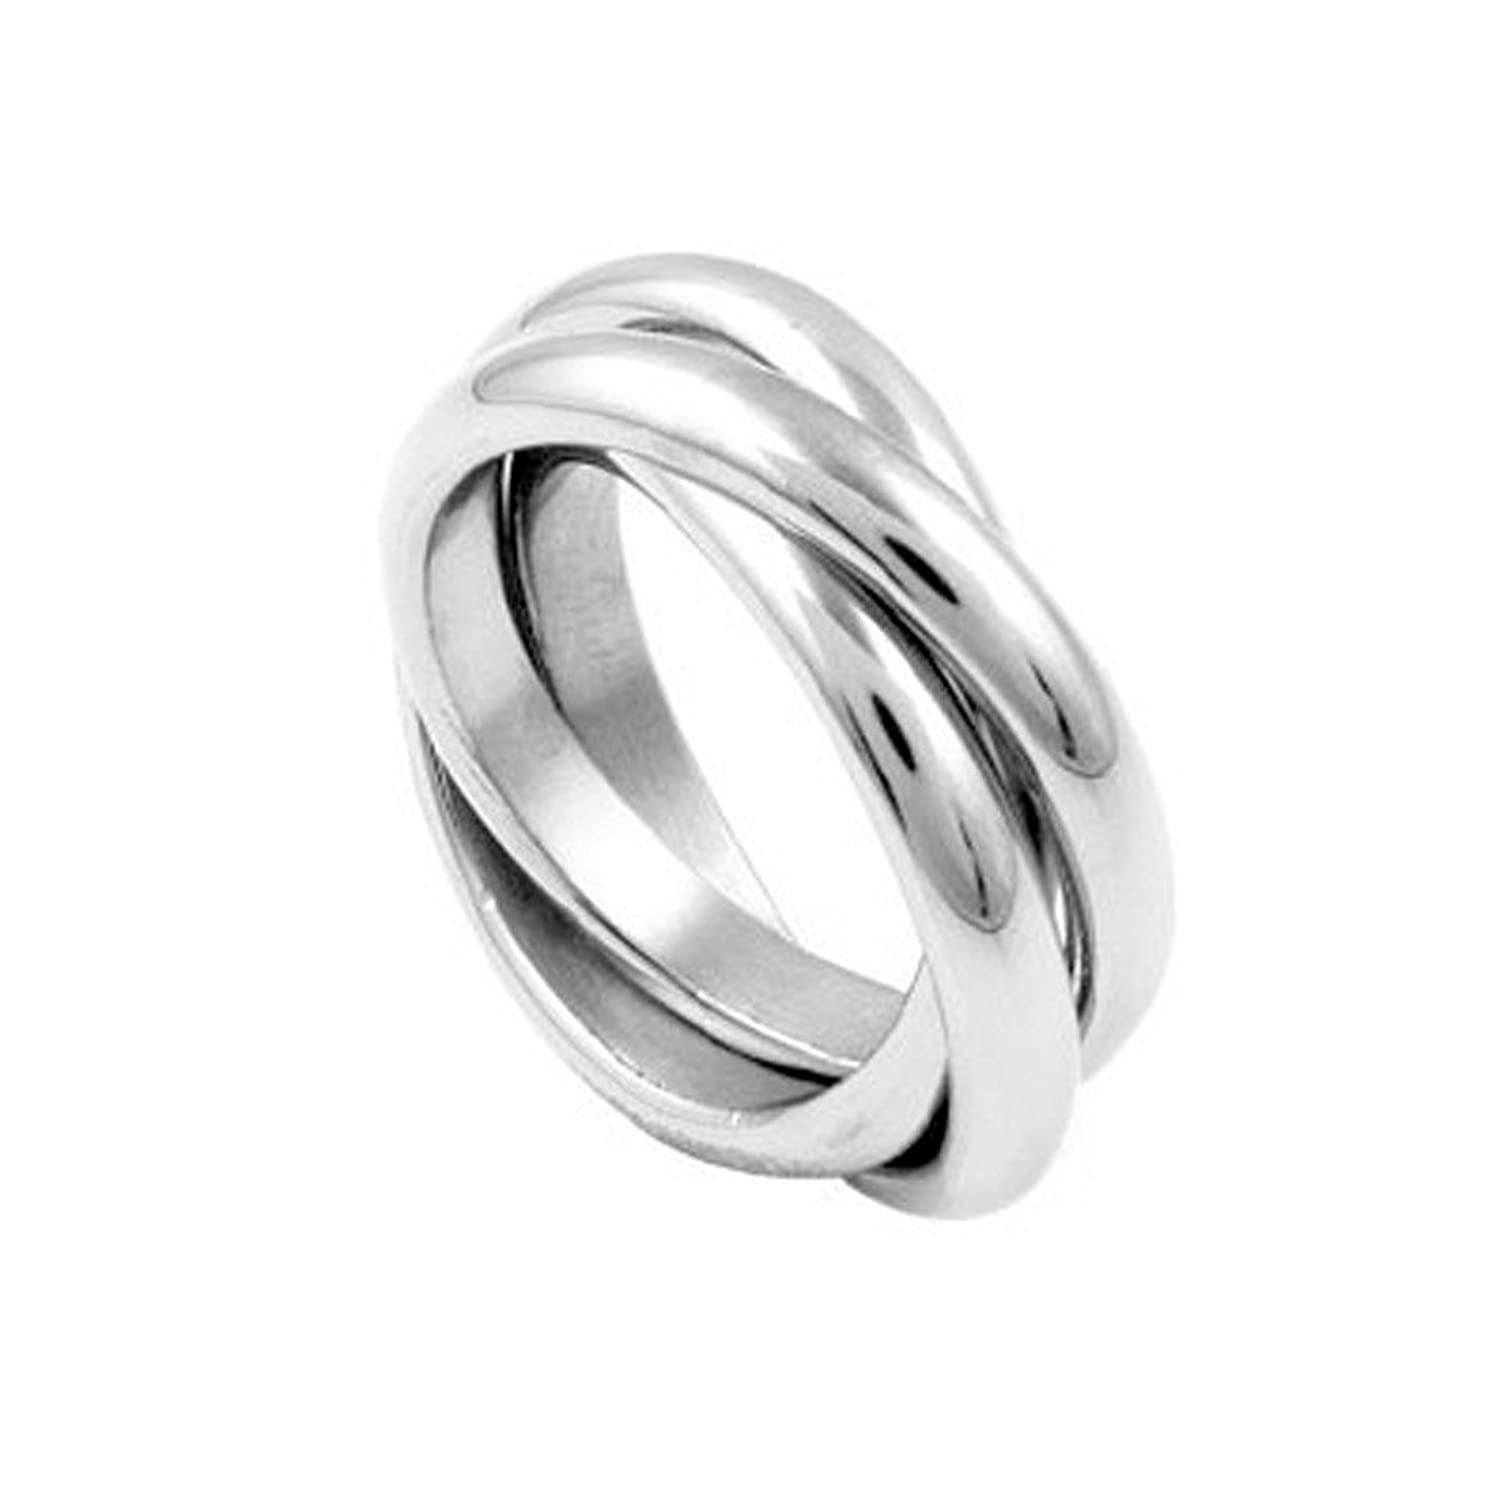 rings trinity tone mens new boxed band celtic colour wedding stainless ring image womans design gold jewellery knot steel